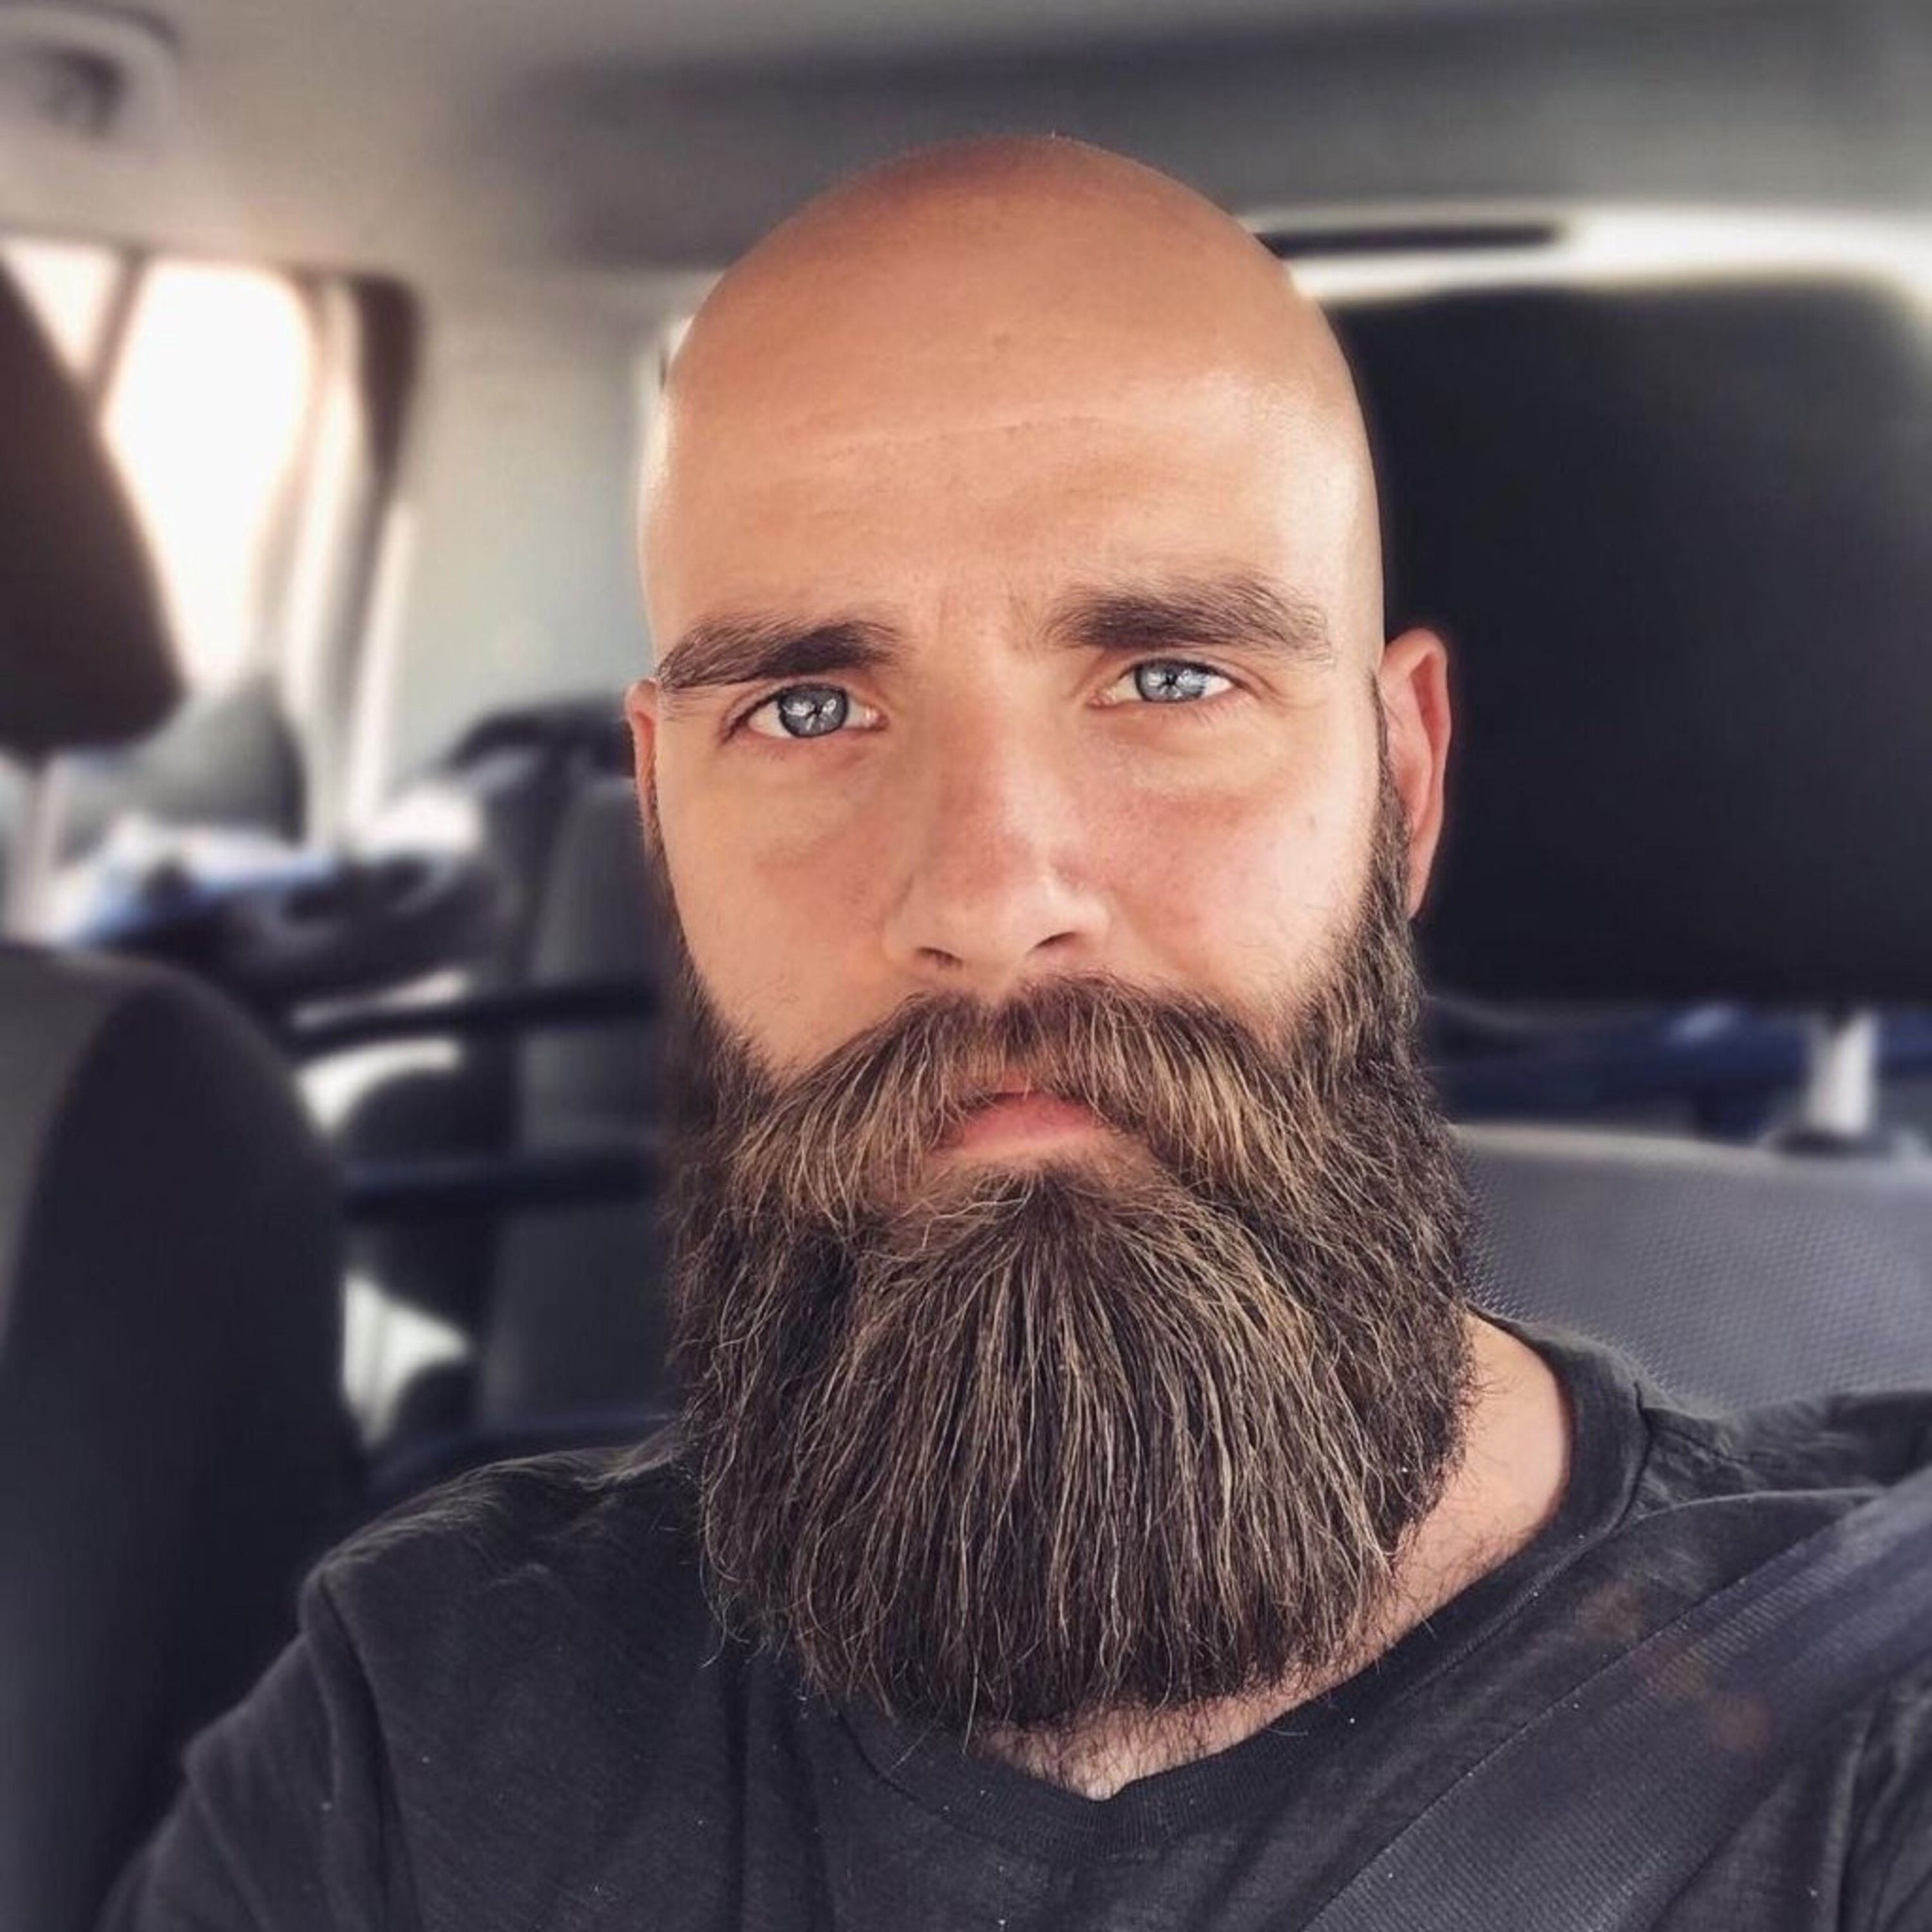 A full beard for men with the shaved haircut.